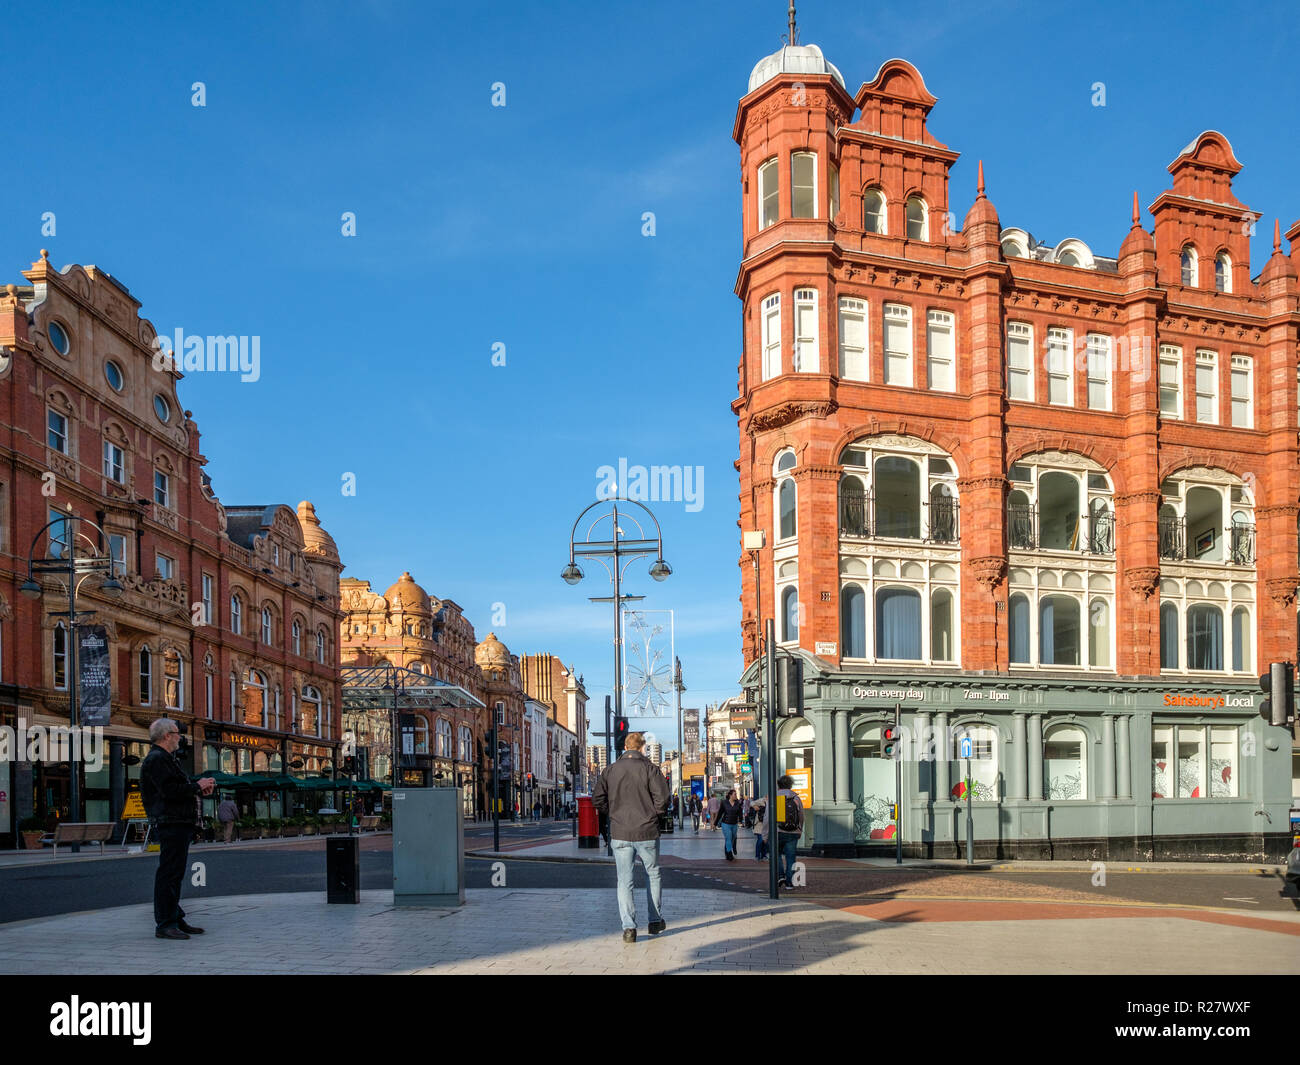 Leeds Victorian and Edwardian Shopping Arcades (left) in the city center of Leeds.The arcades in the Victoria quarter are a center for luxury shopping - Stock Image